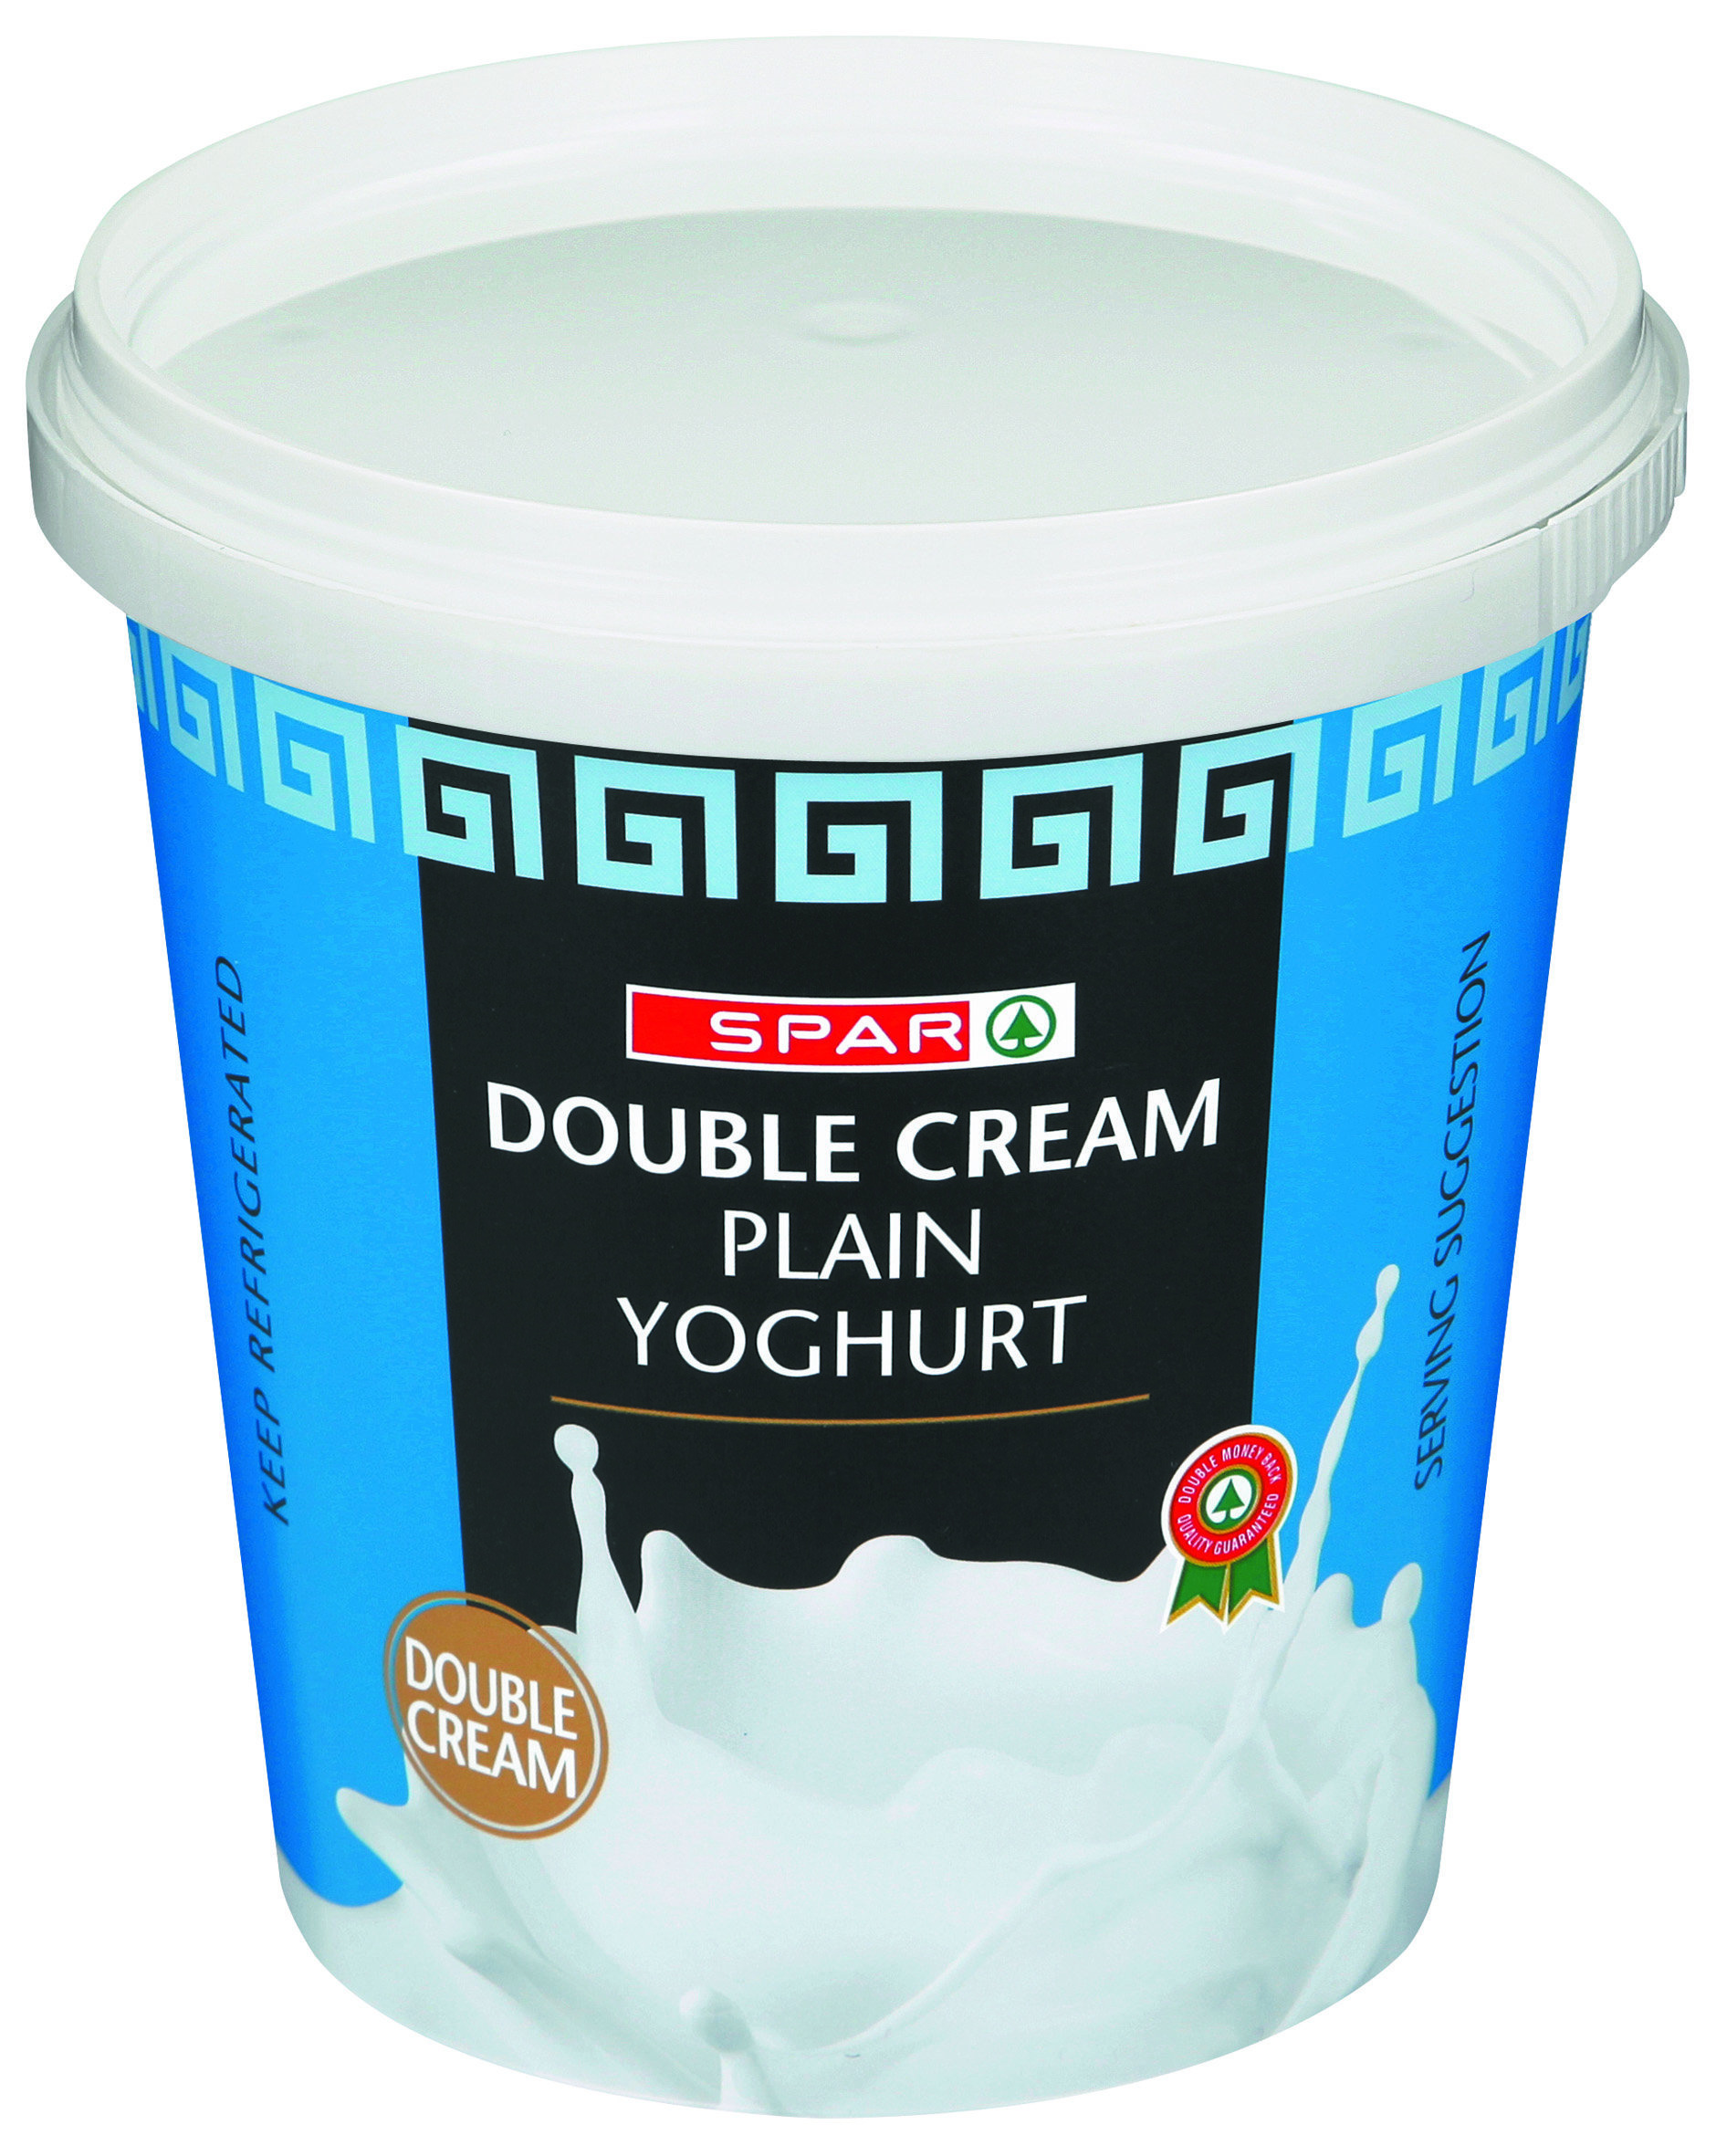 Double Cream Yoghurt